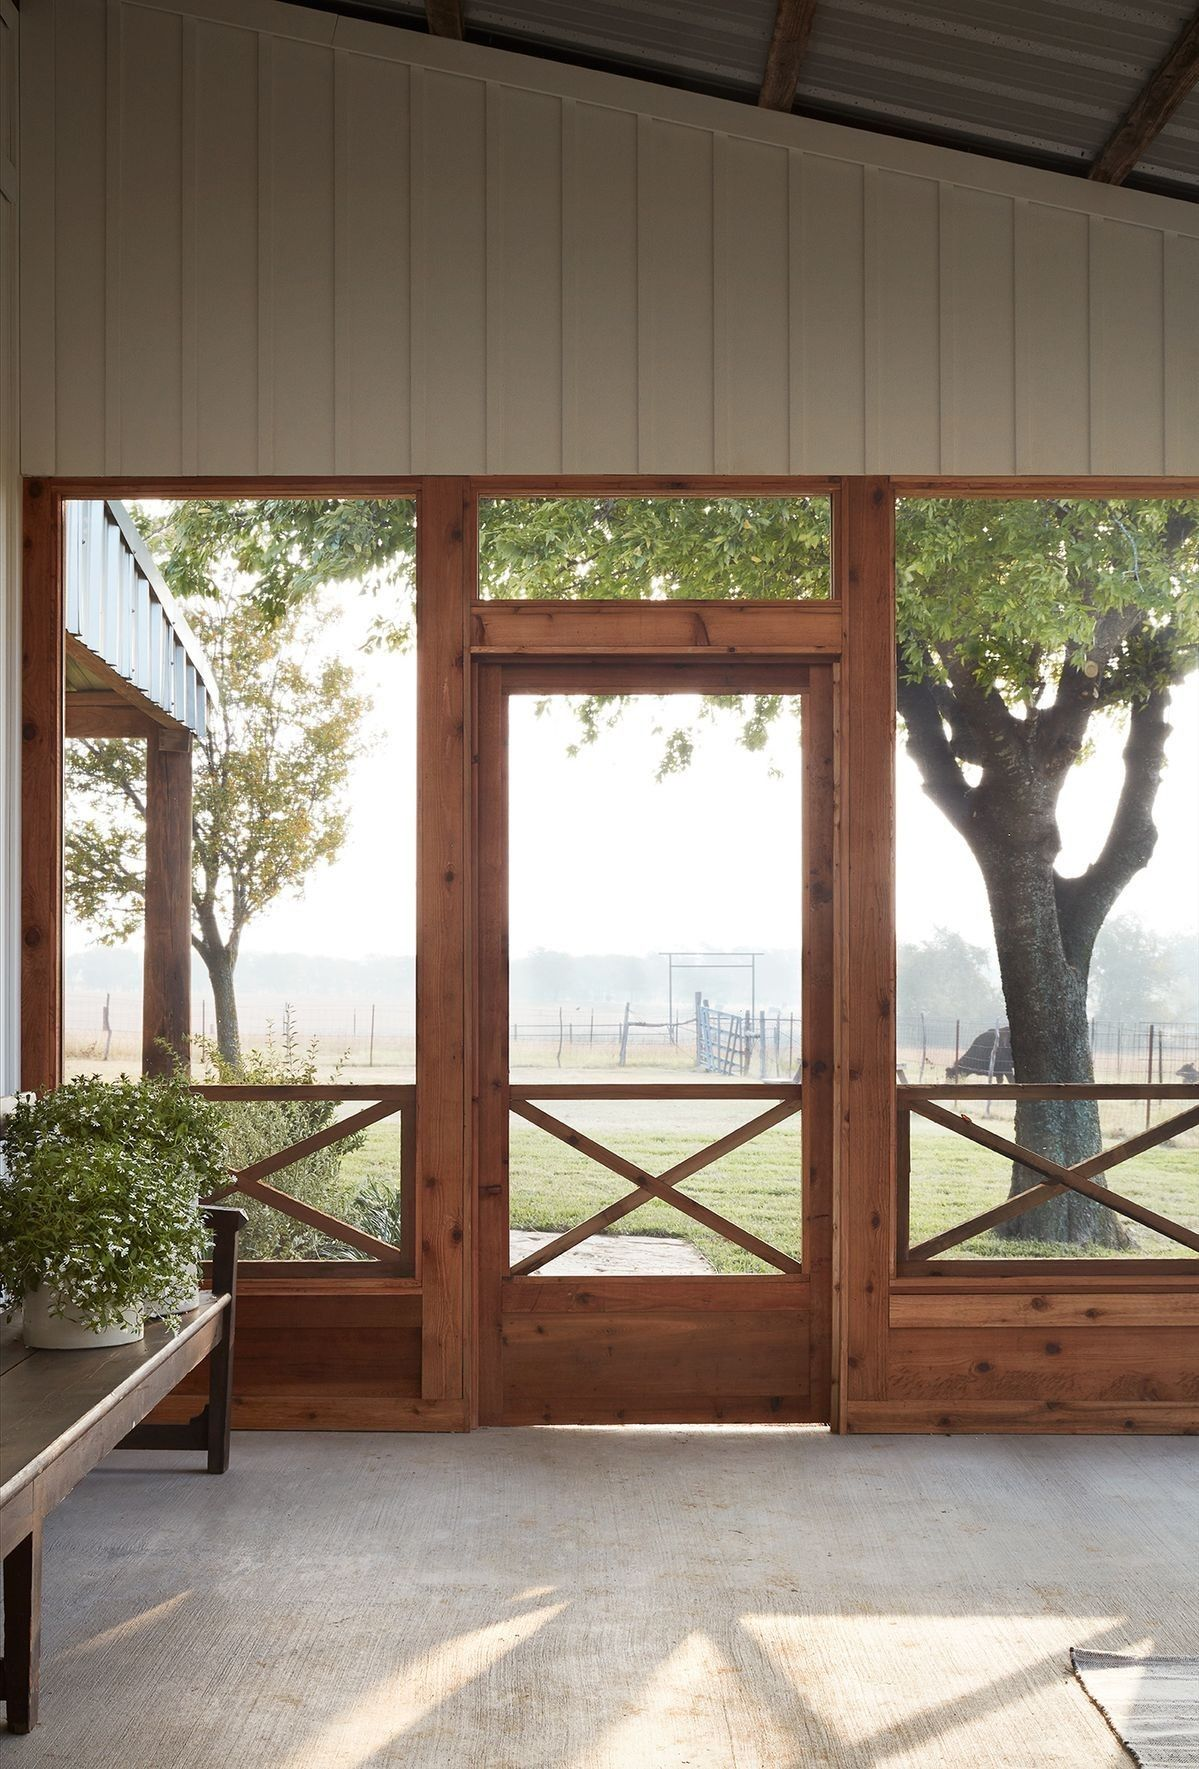 pin by rachel hilker on porch deck in 2019 sunroom decorating screened in patio porch. Black Bedroom Furniture Sets. Home Design Ideas